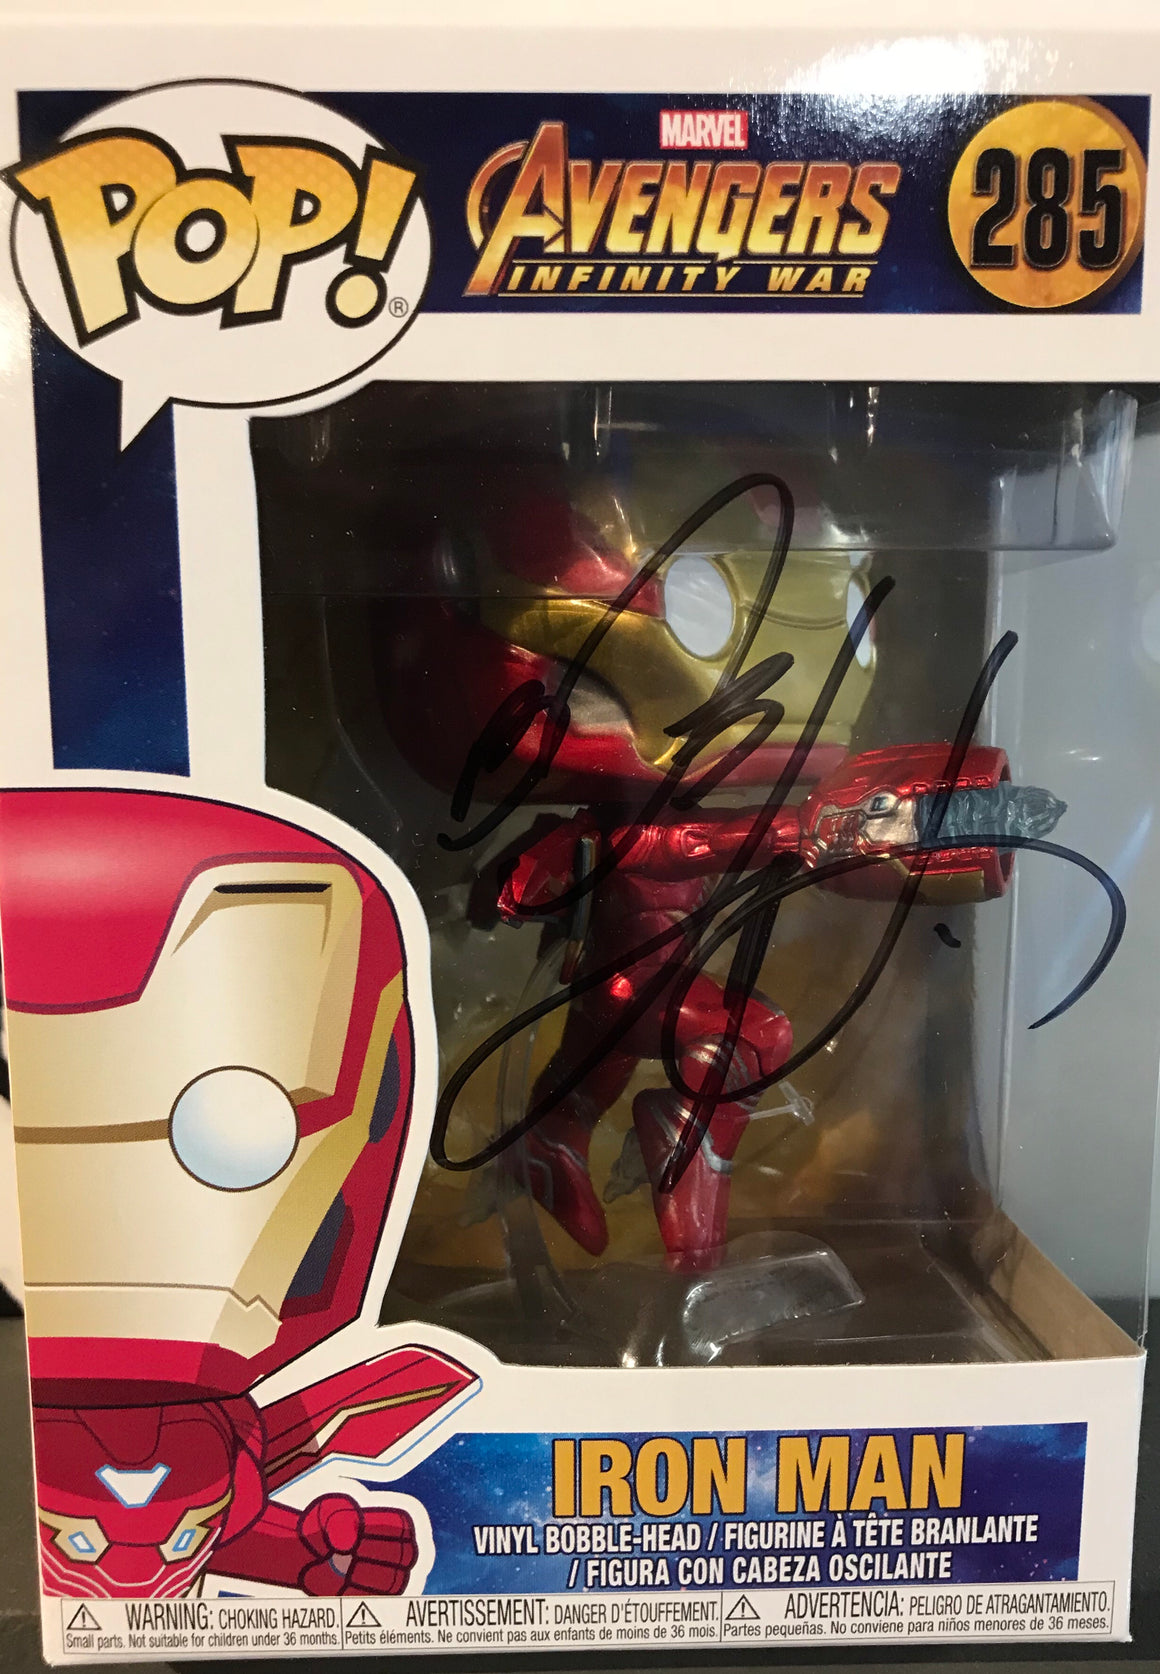 POP AVENGERS INFINITY WAR IRON MAN VINYL FIG - SIGNED BY BOB LAYTON